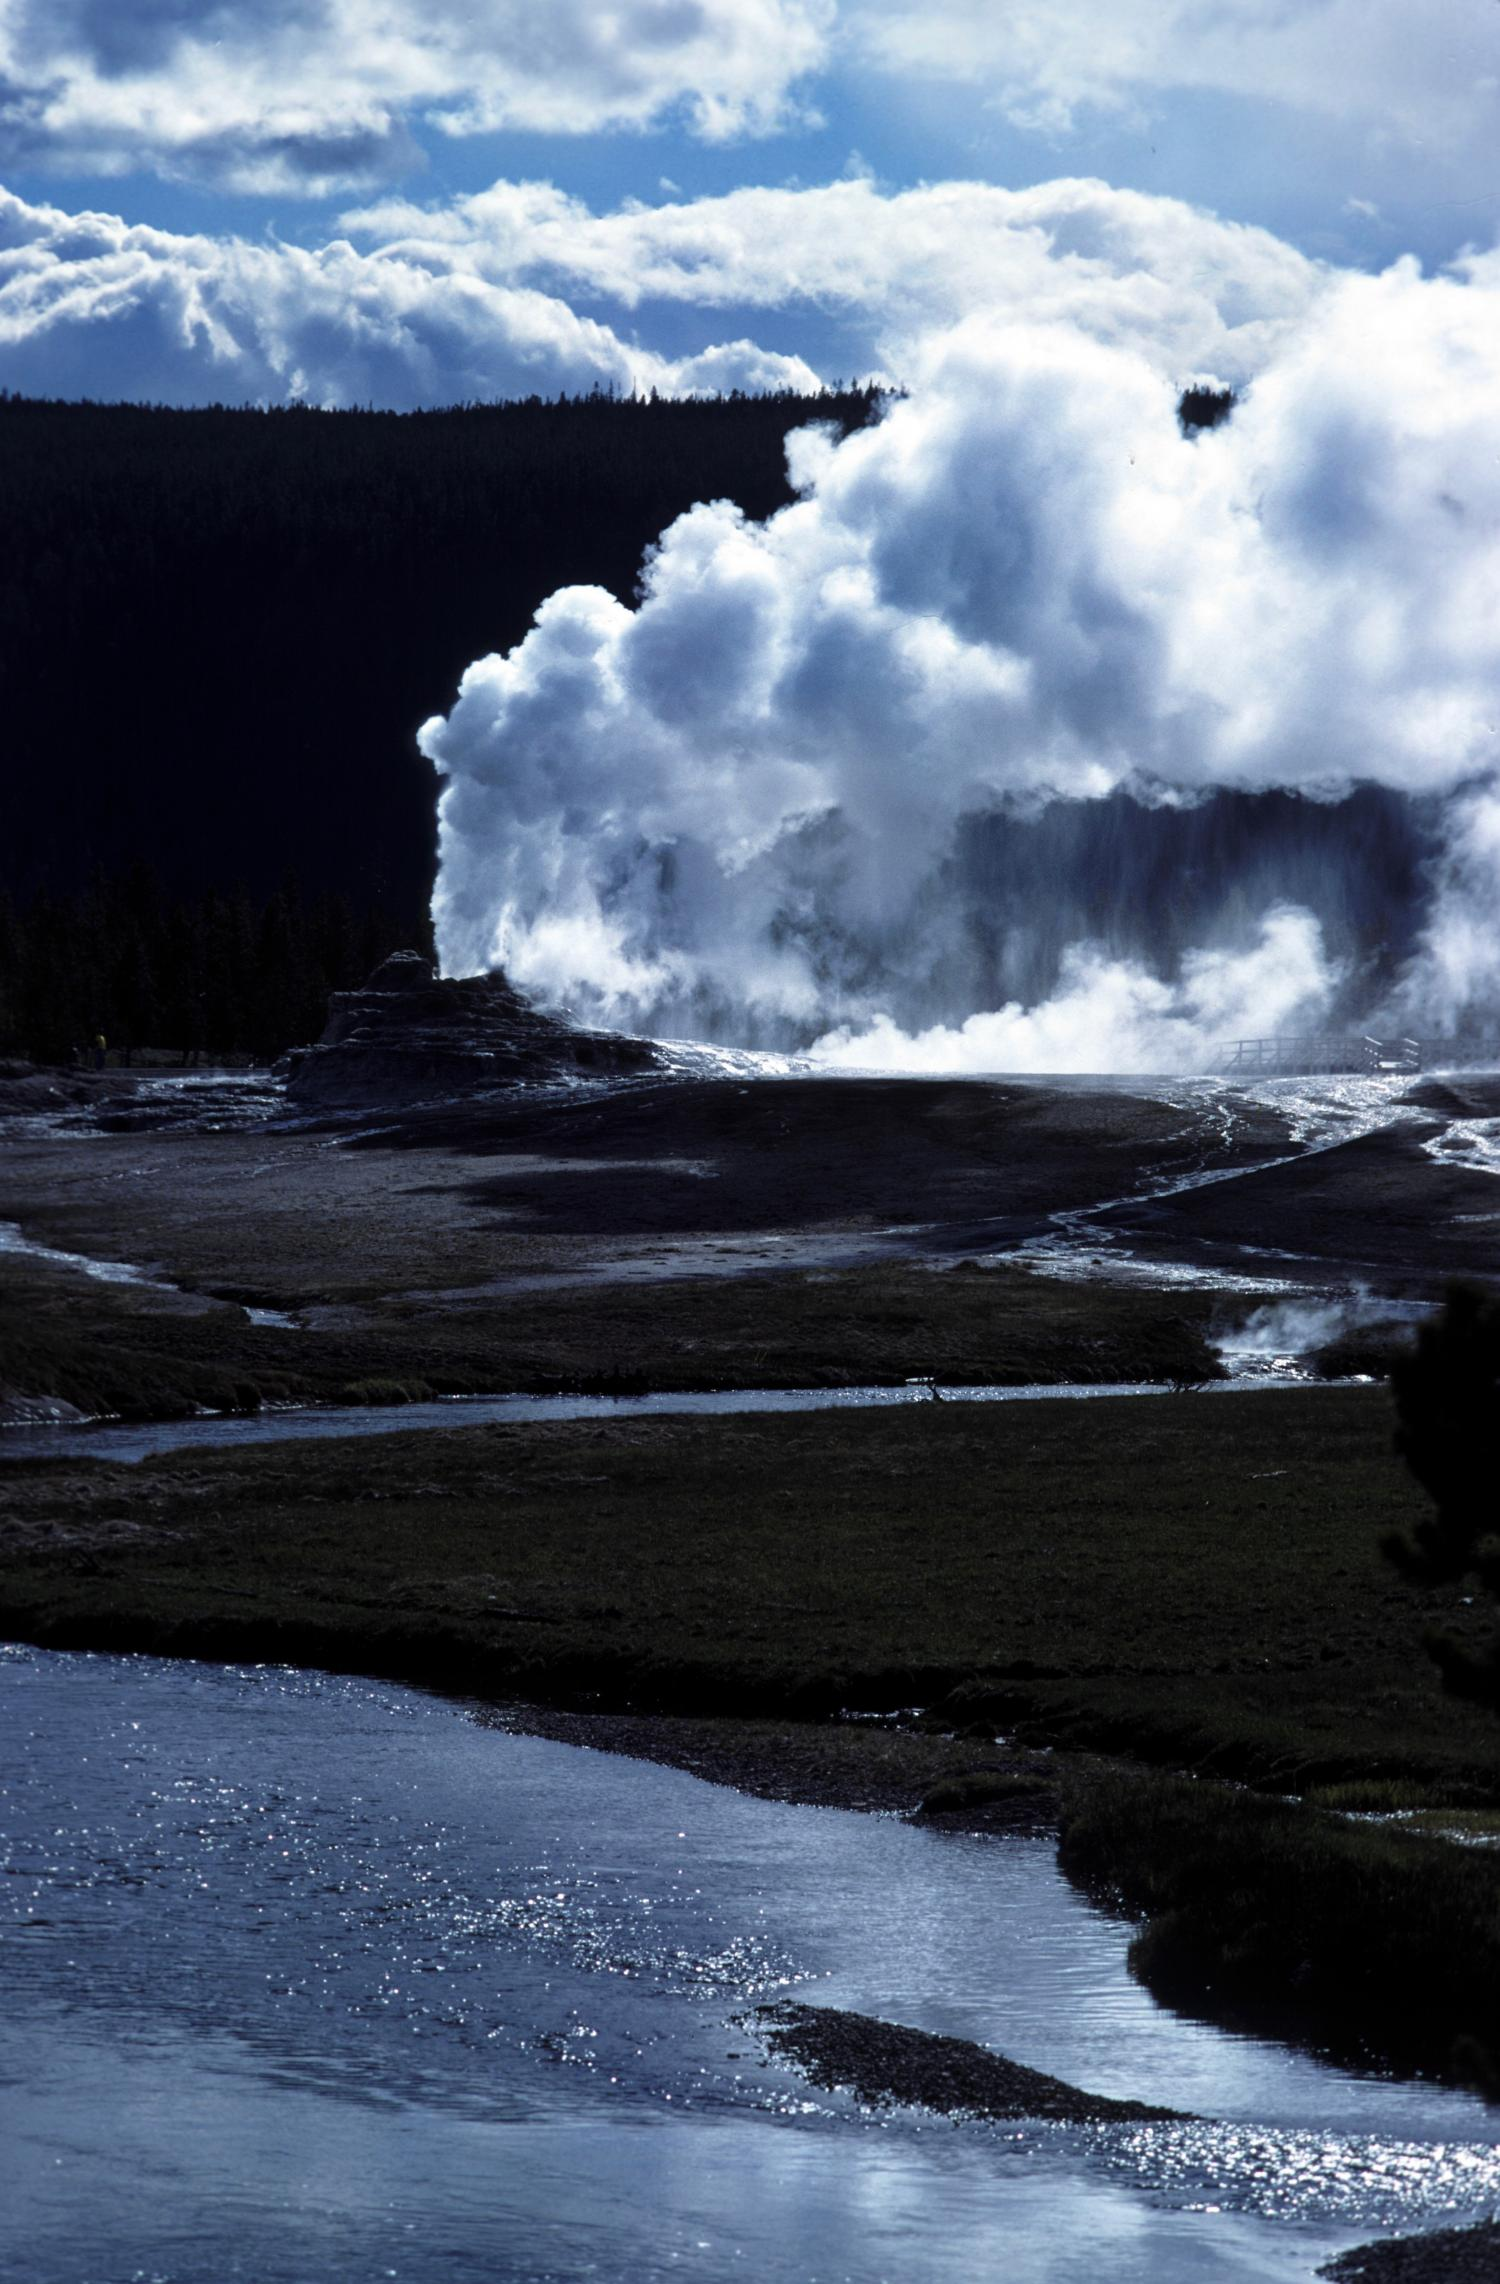 THIS PHOTO OF 'CASTLE GEYSER'  WAS TAKEN OVER 30 YEARS AGO IN YELLOWSTONE PARK - THE GEYSER PRESSURE HAS LOWERED DRAMATICALLY ALONG WITH  'OLD (LESS) FAITHFUL GEYSER' ALSO